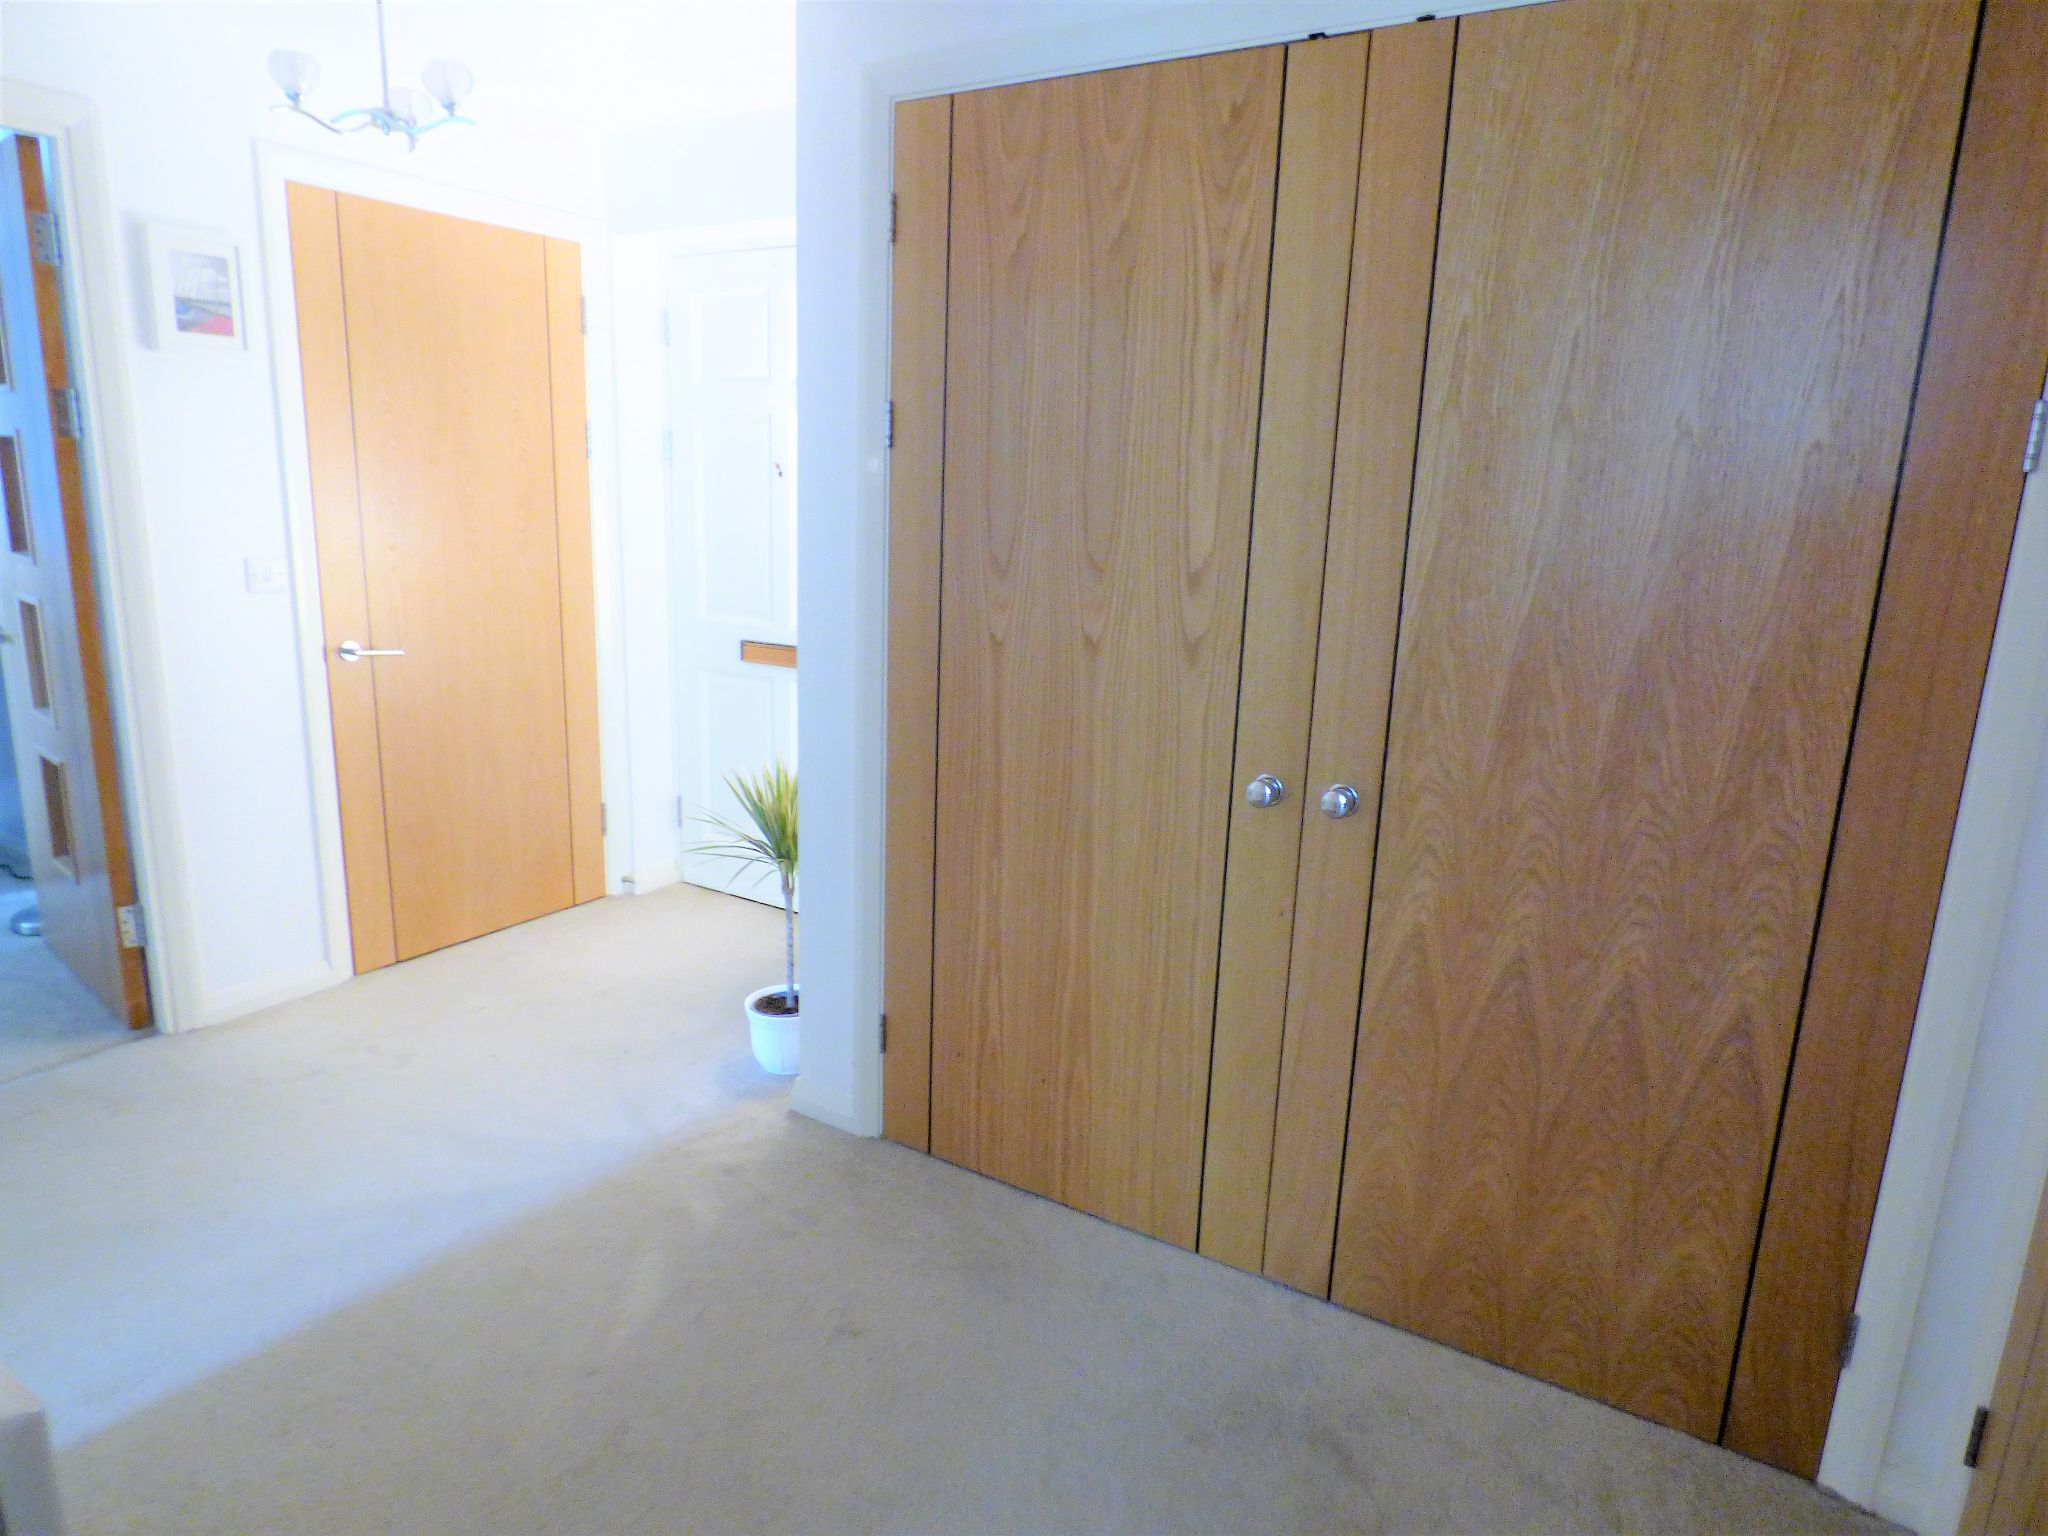 2 Bedroom Ground Floor Flat/apartment For Sale - Photograph 14